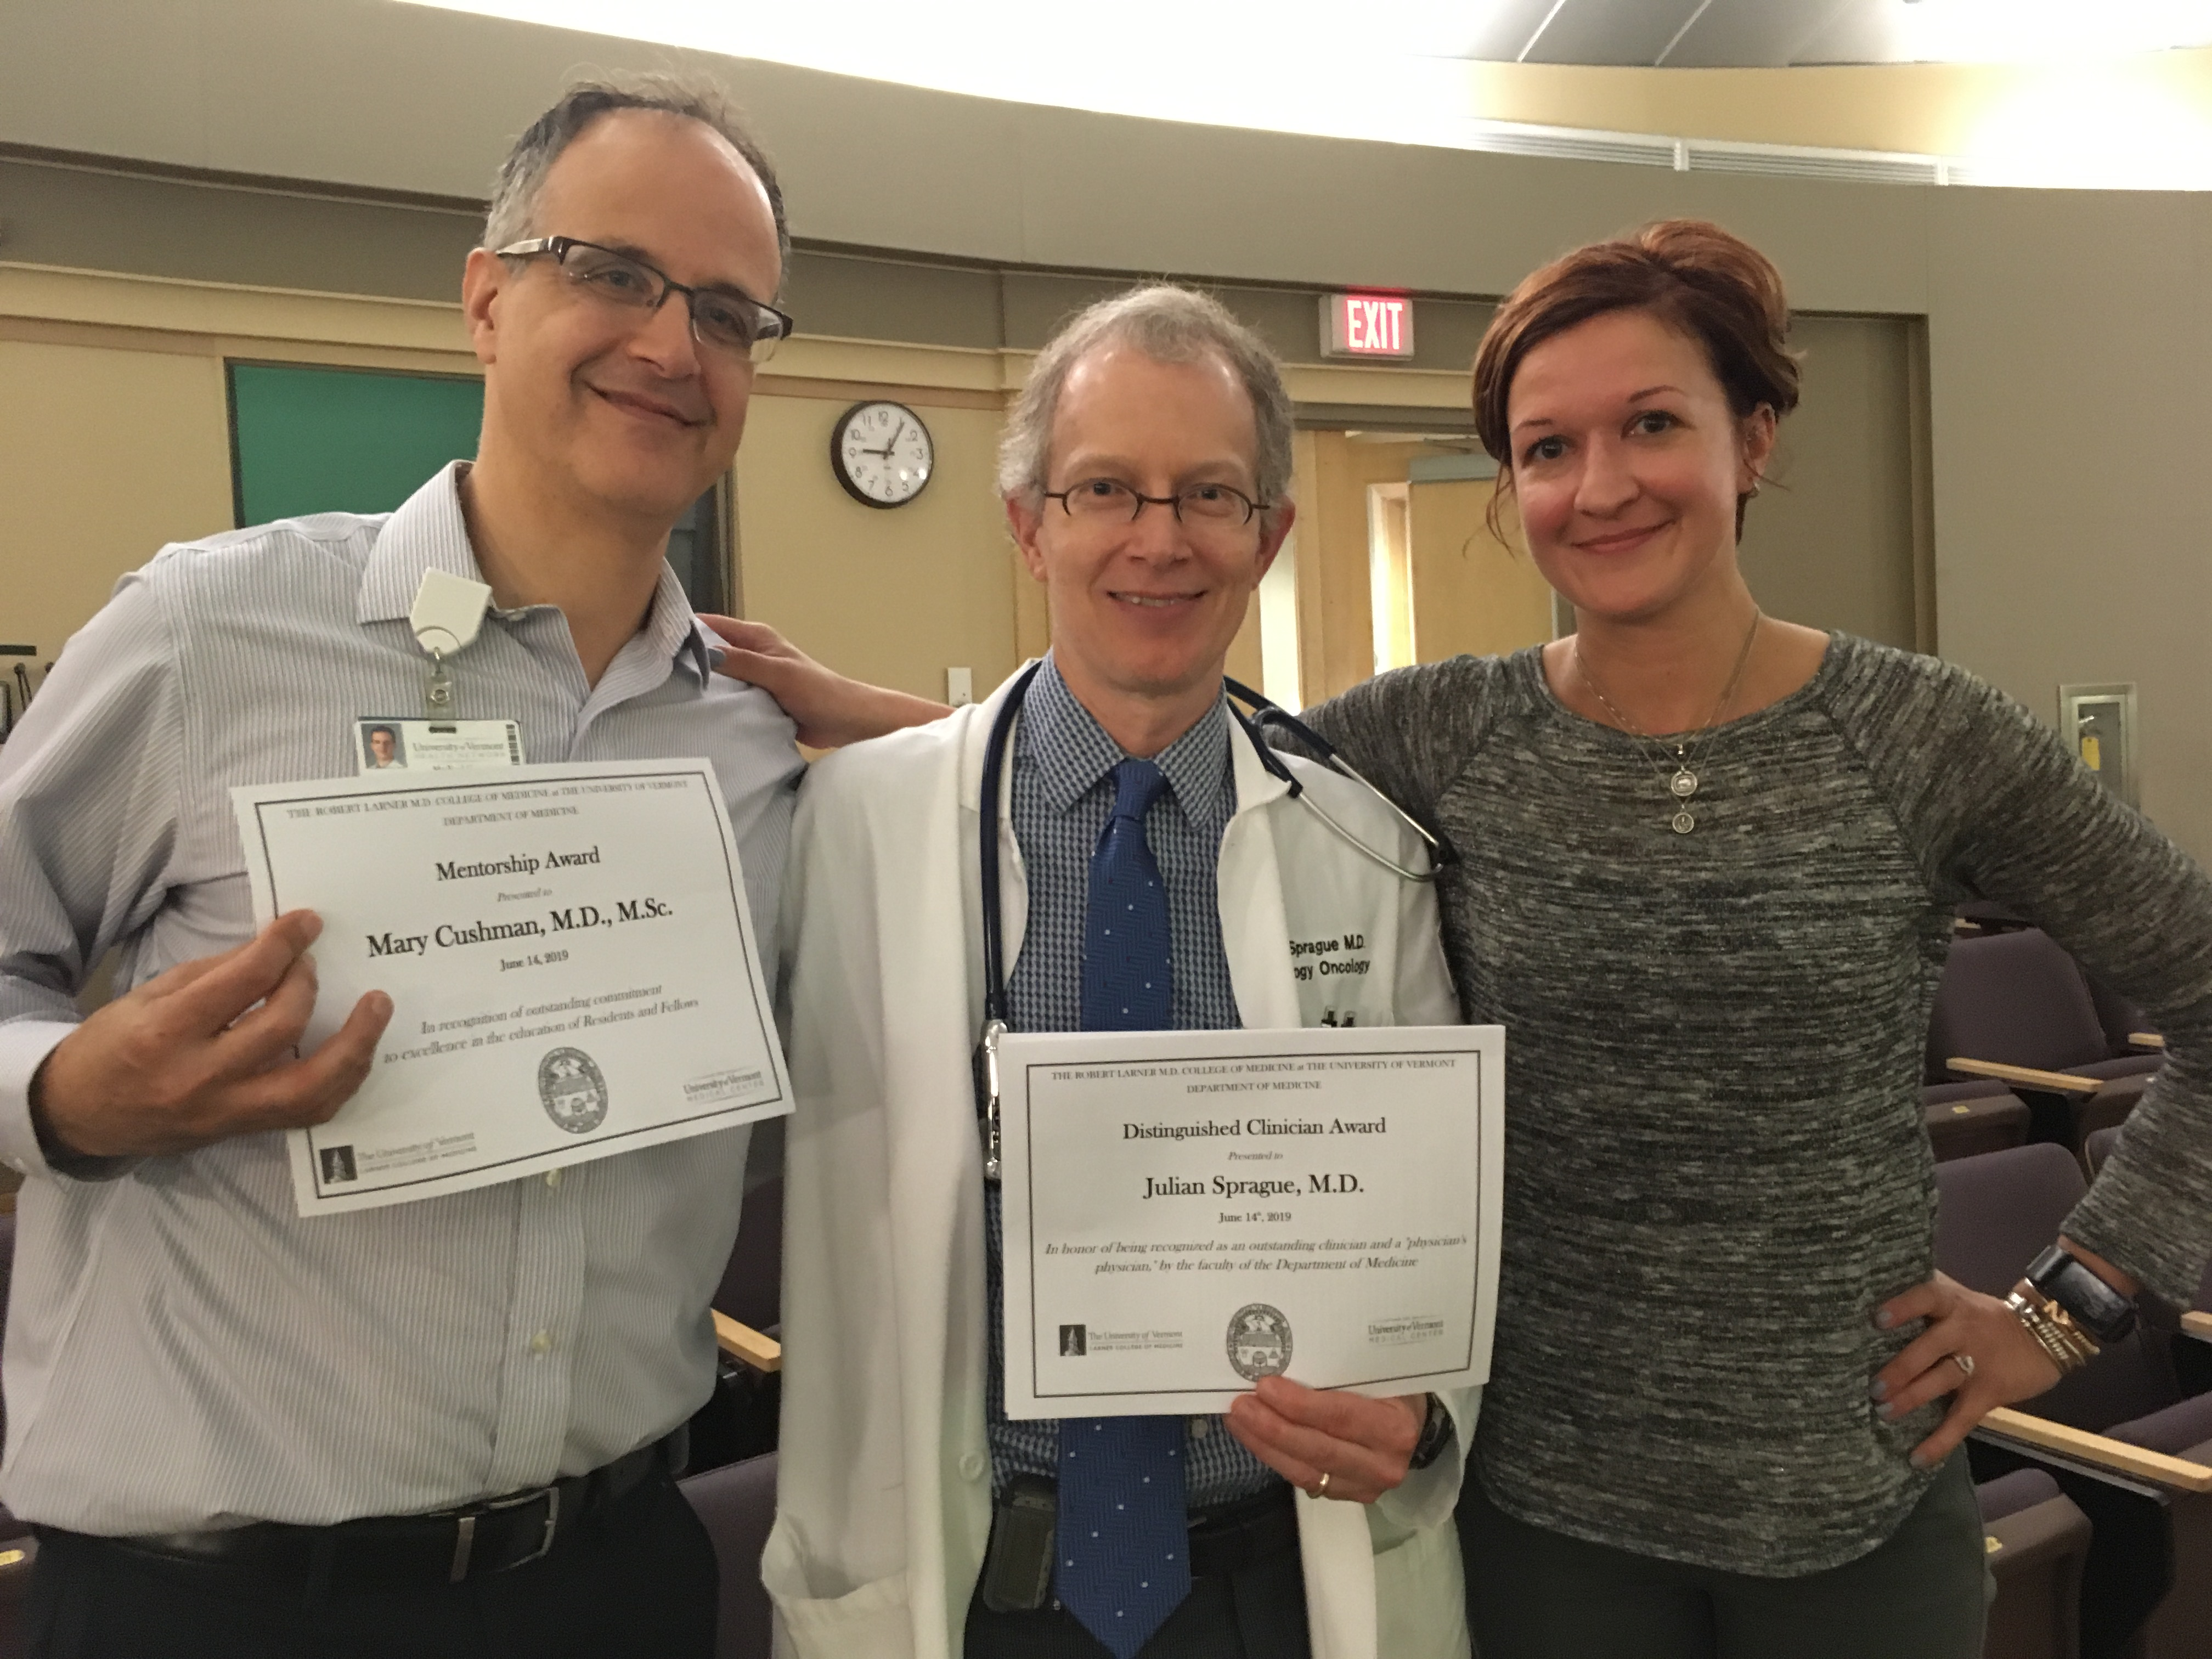 Dr. Cushman & Dr. Sprague mentorship award